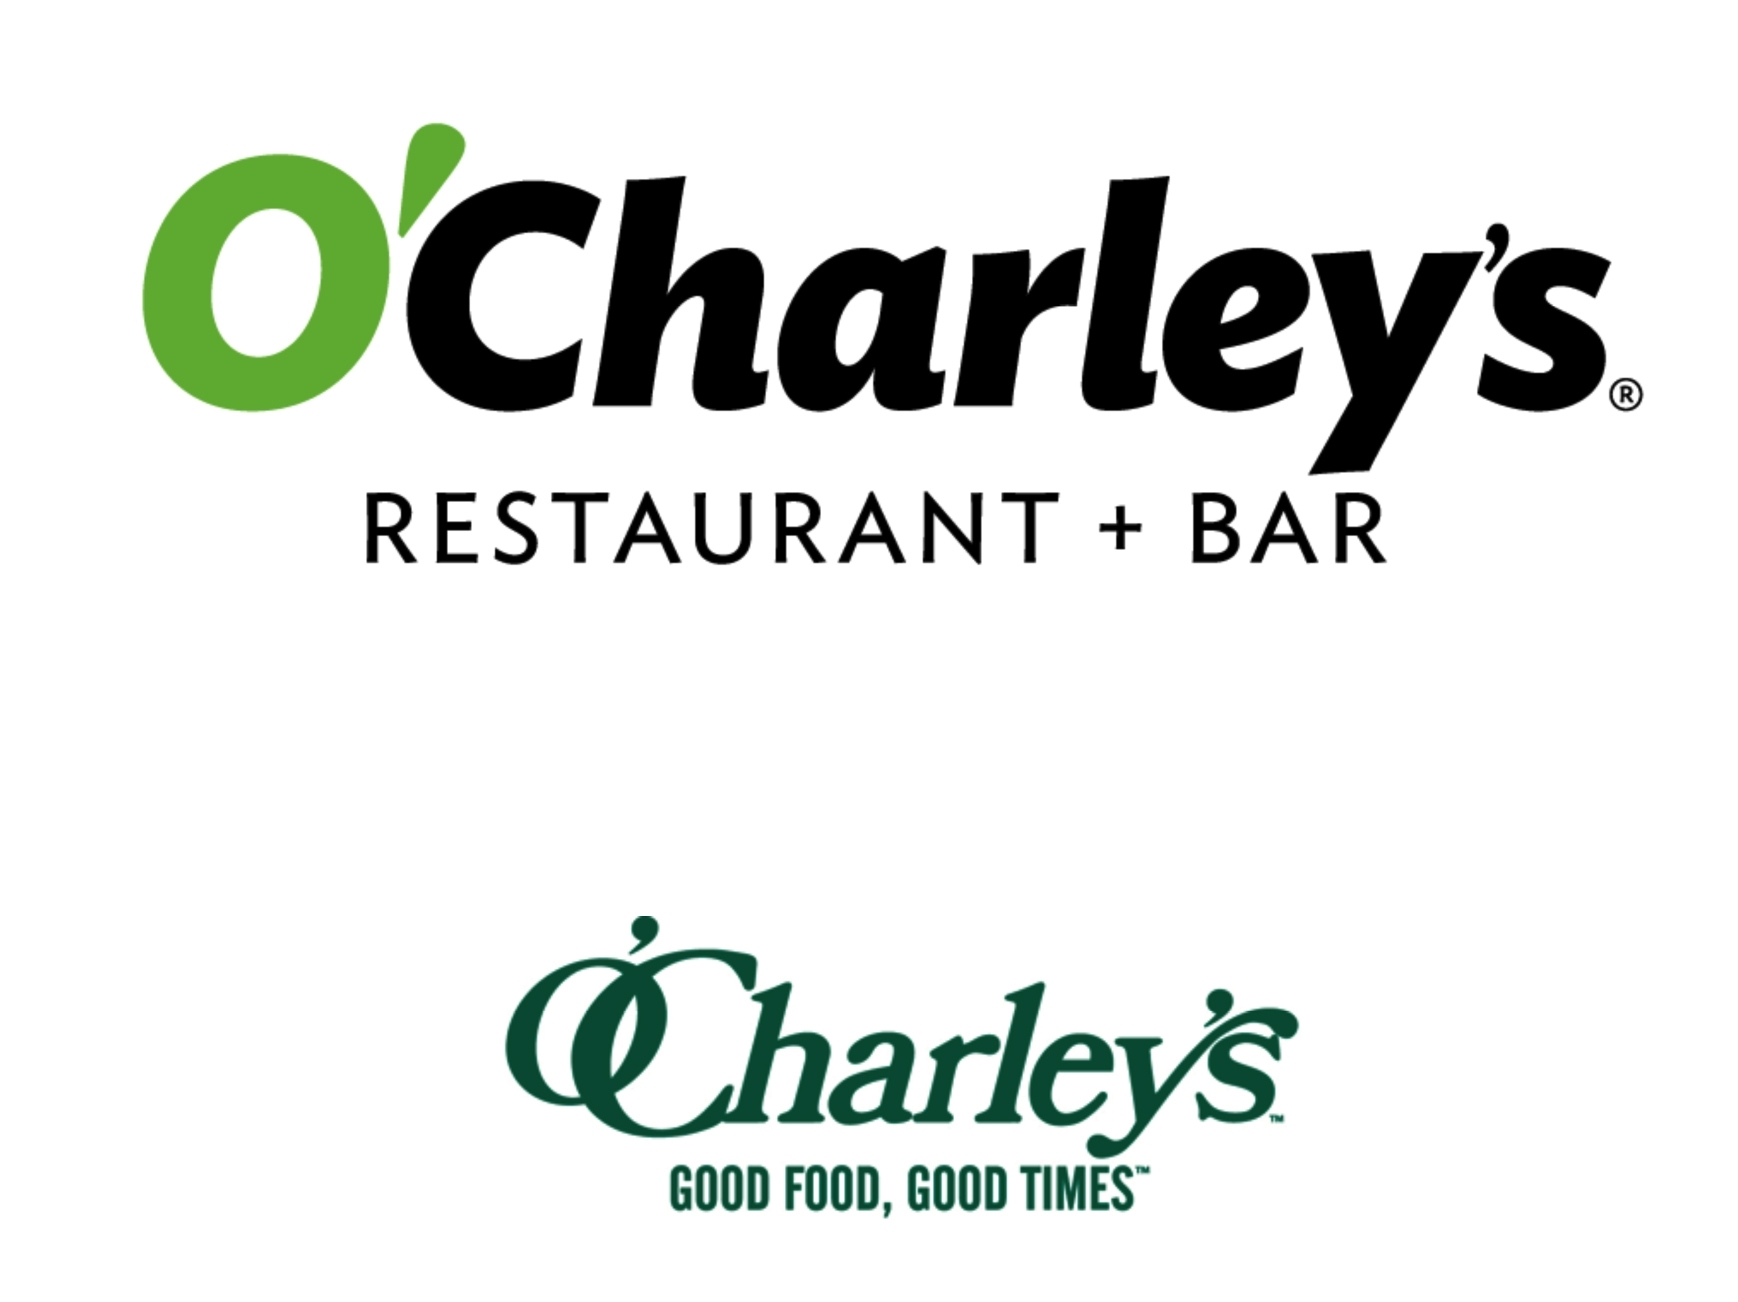 Free Slice of Pie at O'Charley's